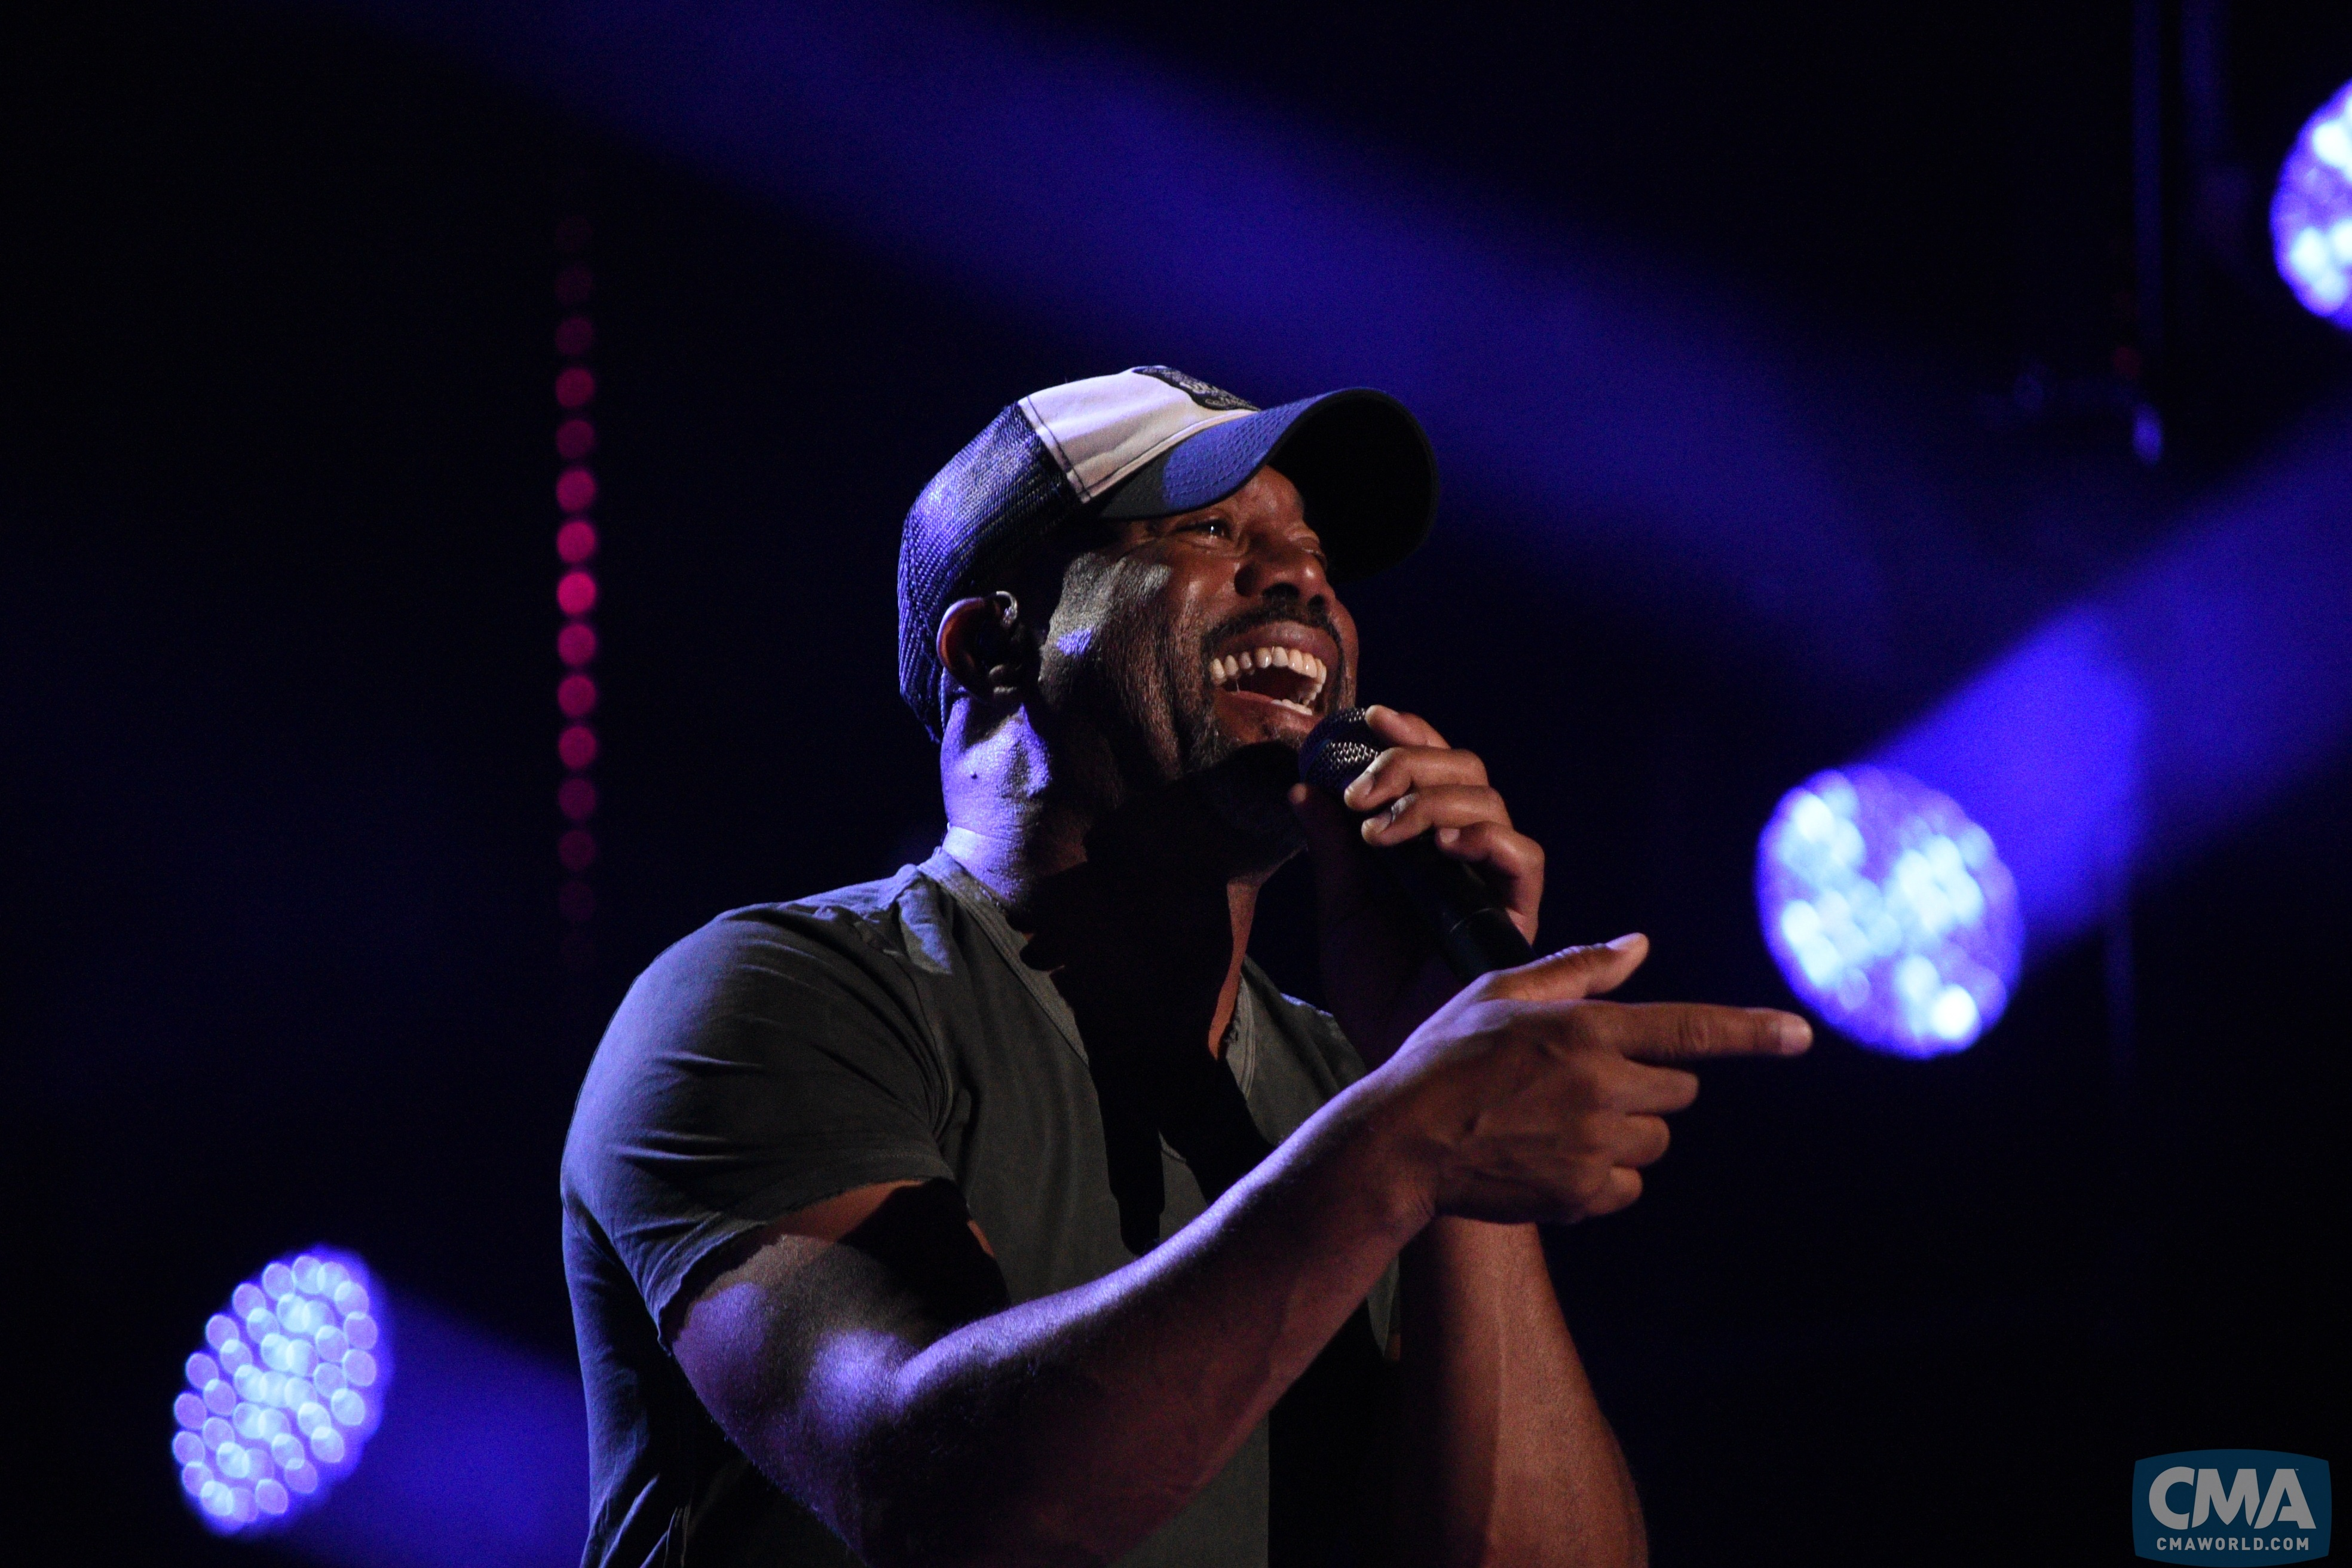 Darius Rucker Earns Eighth No. 1 With 'If I Told You'